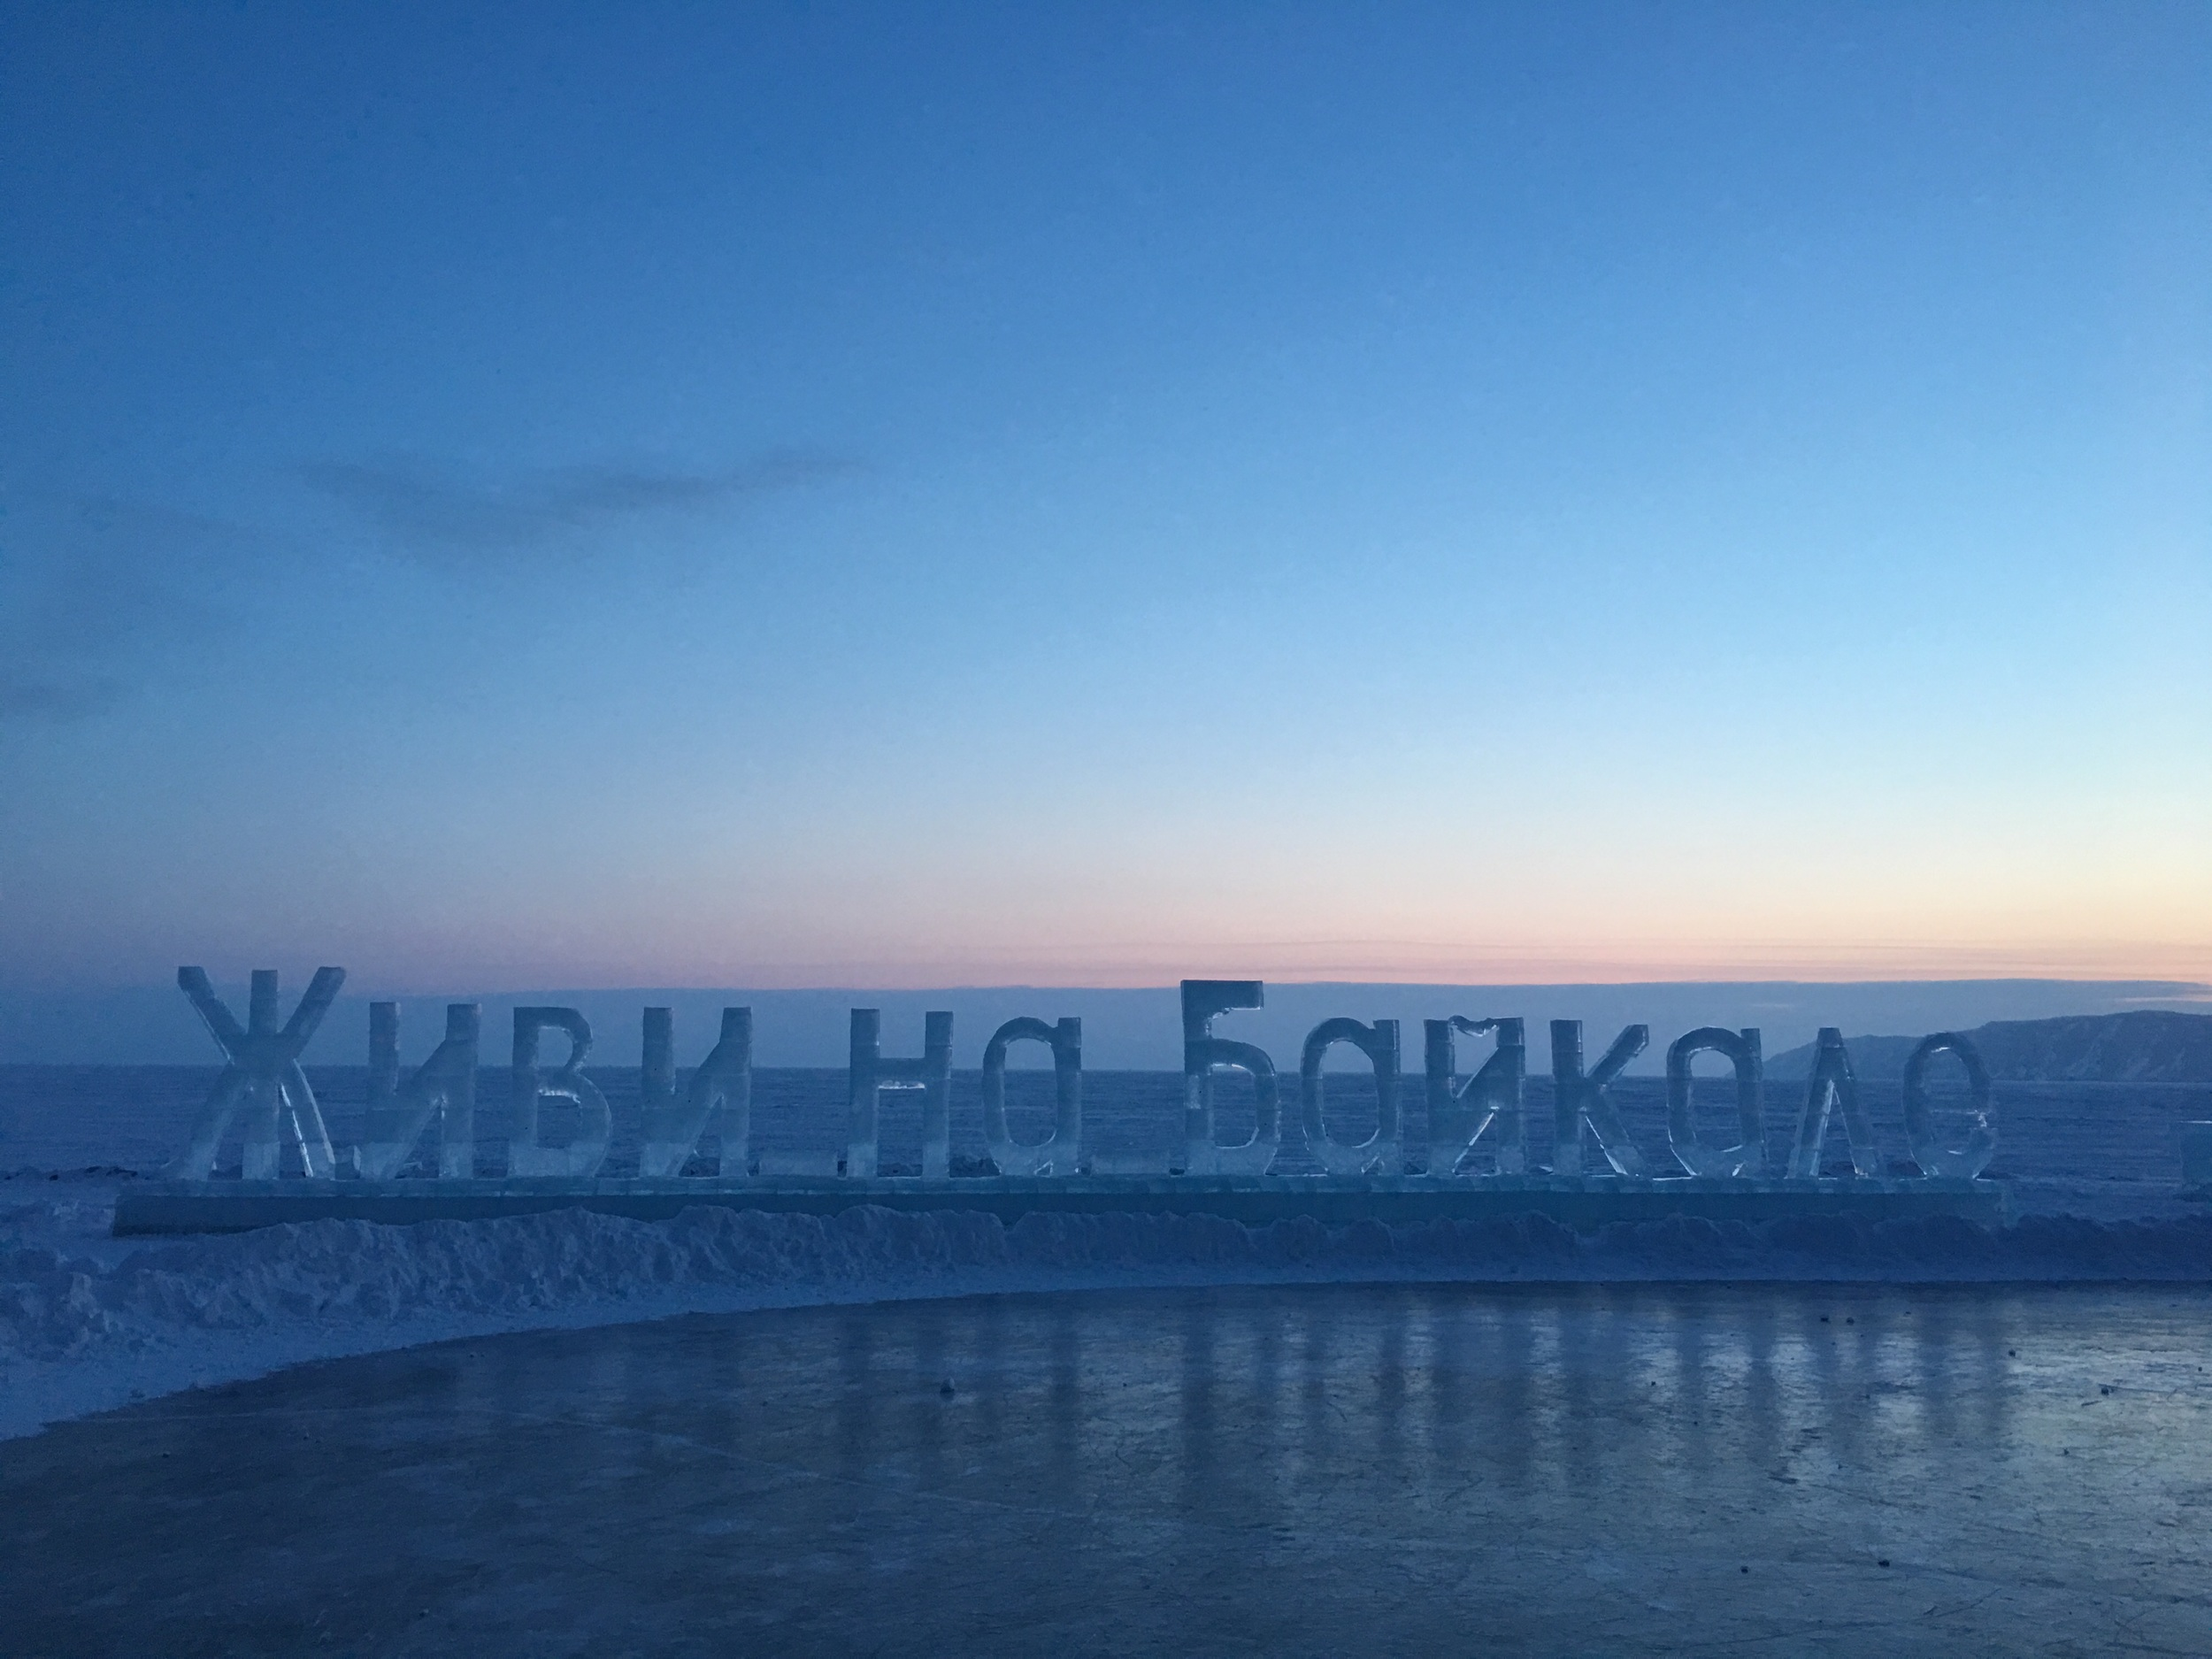 Hey, mom! I'm alive on Baikal. (Not really what it means, but doesn't matter - if you get to read this.)